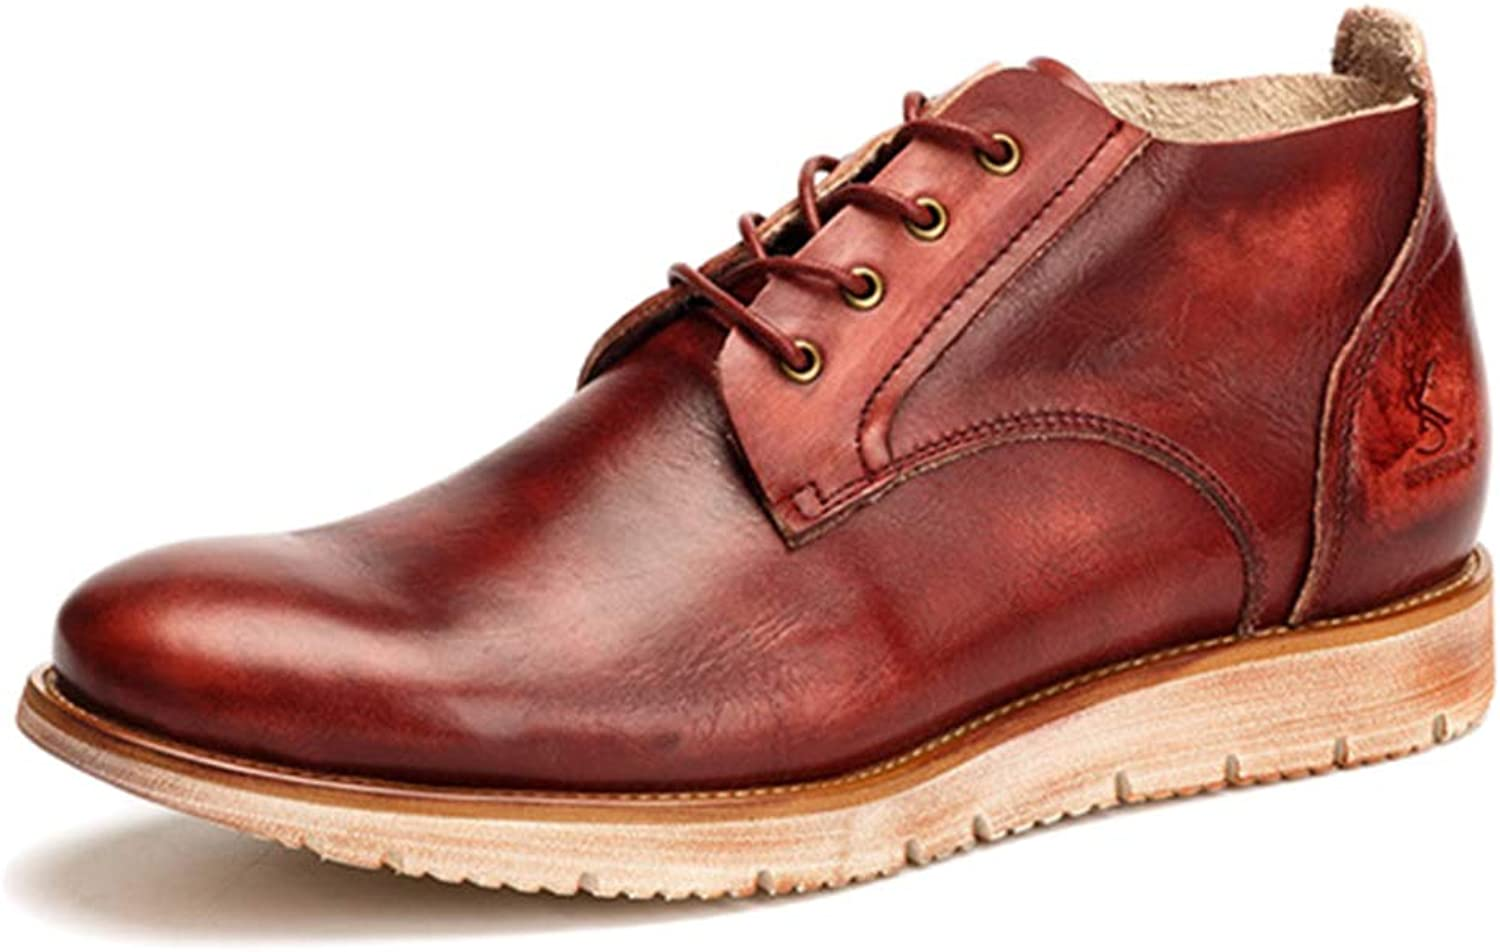 Casual shoes for Mens Vintage Brush-Off Genuine Leather Lace ups shoes Martin Boots High Tops Ankle Boots for Outdoor Hiking Desert Boots,Red,39